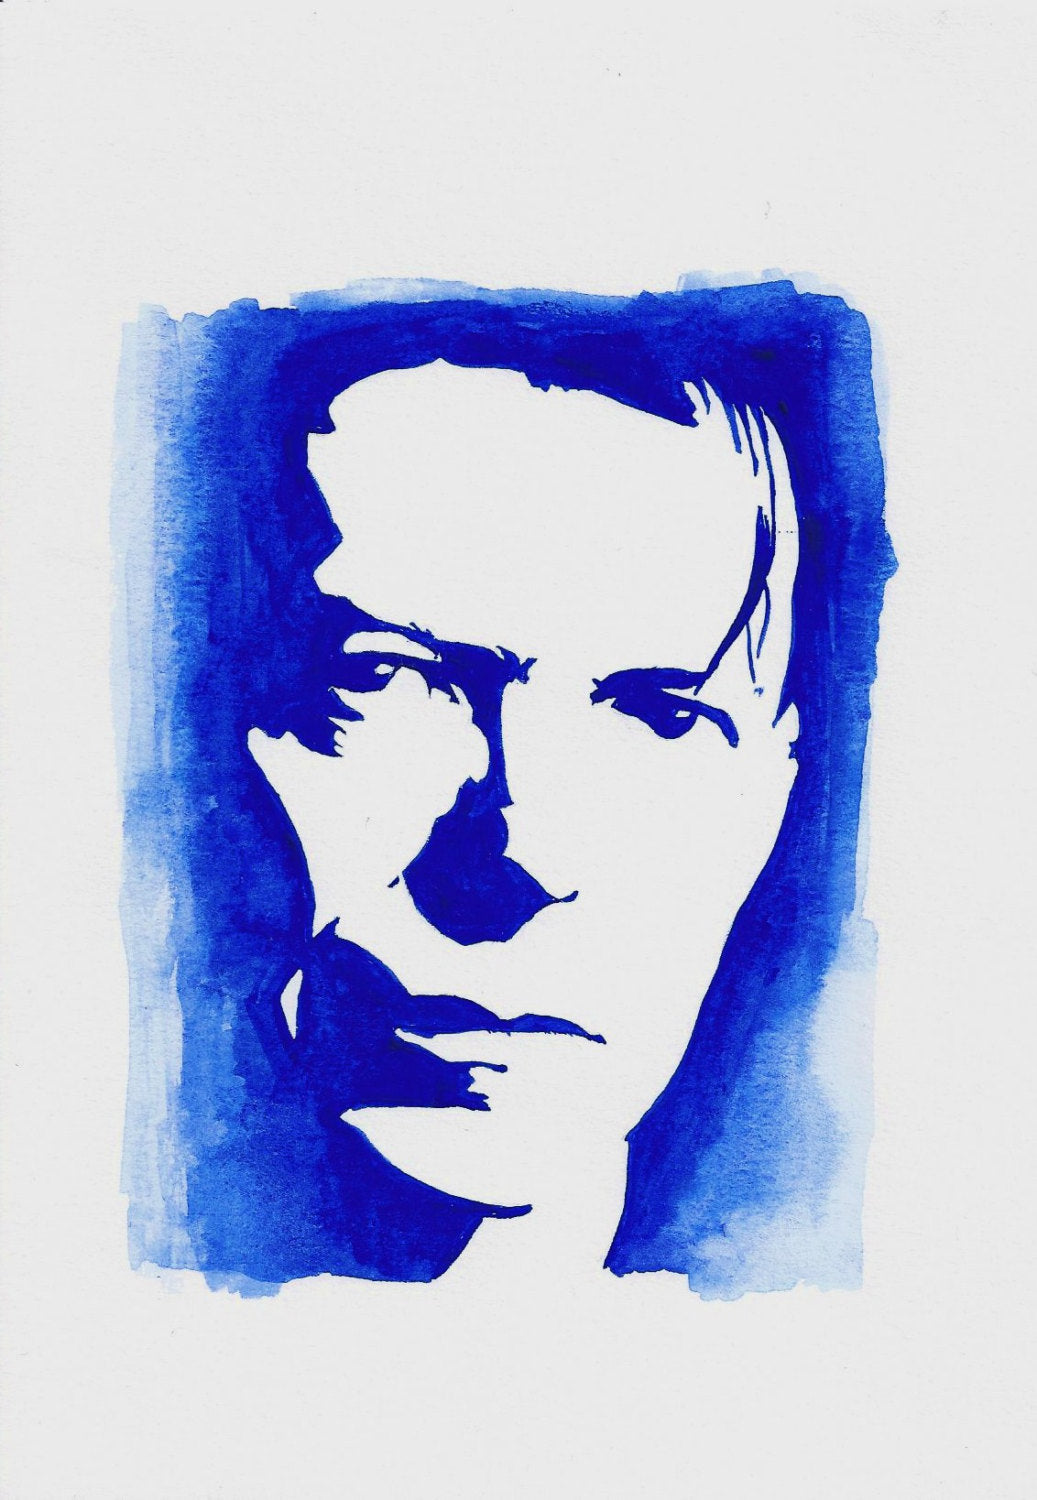 David Bowie - A4 Print - Original Watercolour - ByCandlelight27